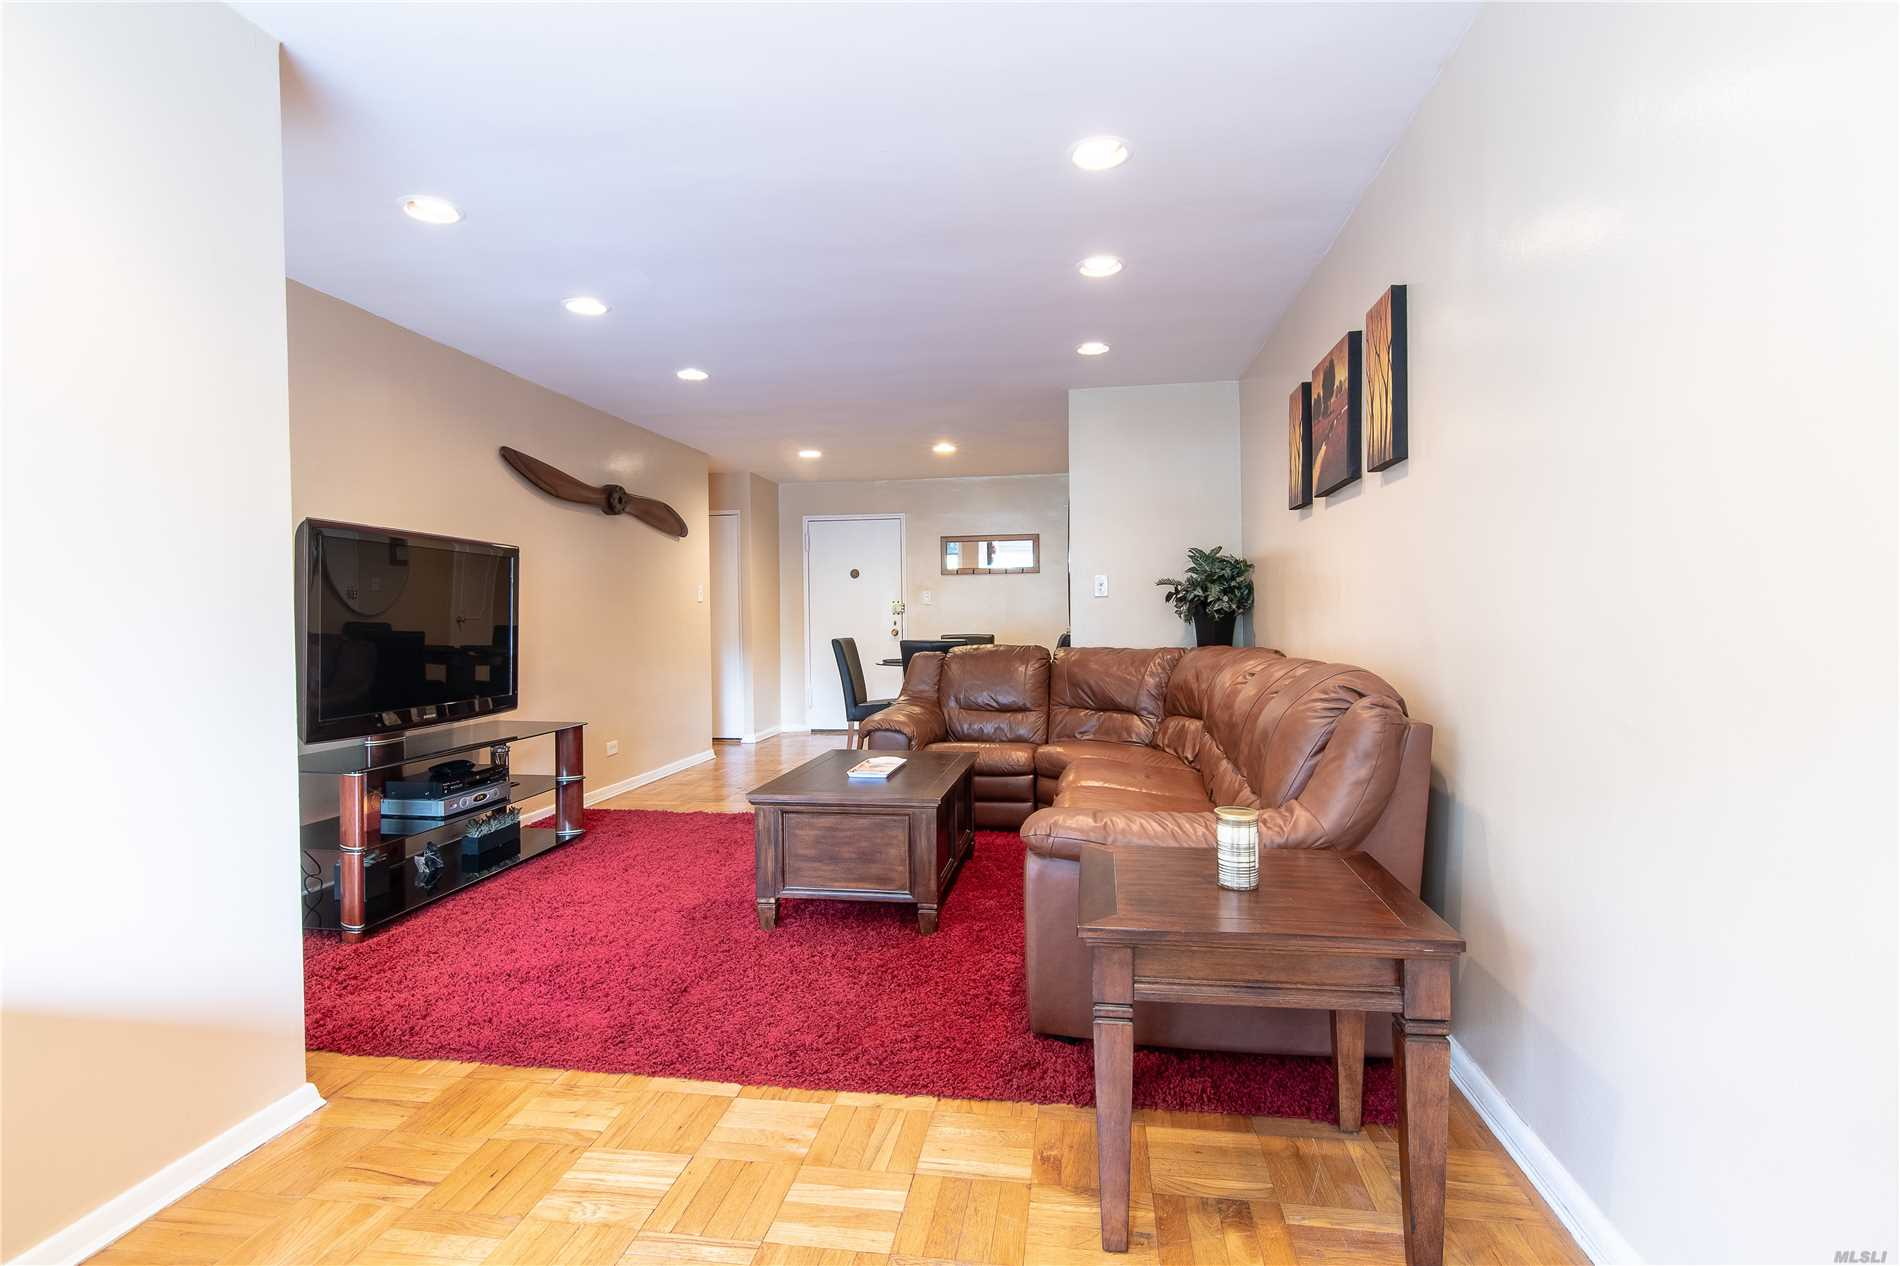 Spacious Sun-Drenched Apartment With Laundry In The Unit. Come Live In Prestigious Section Of Bayside Terrace. Super Convenient With Your Own Parking Spot, Numerous Bus Lines, Fastest Lirr Train Line, Community Pool, Playgrounds, And Convenience To A Lively Town Filled With Restaurants, Movies, And Shopping. This Well Maintained Apartment Has Abundance Of Storage And Offers Two Bedrooms With Great Schools. Low Maintenance Includes The Parking And Laundry That Comes With The Apartment